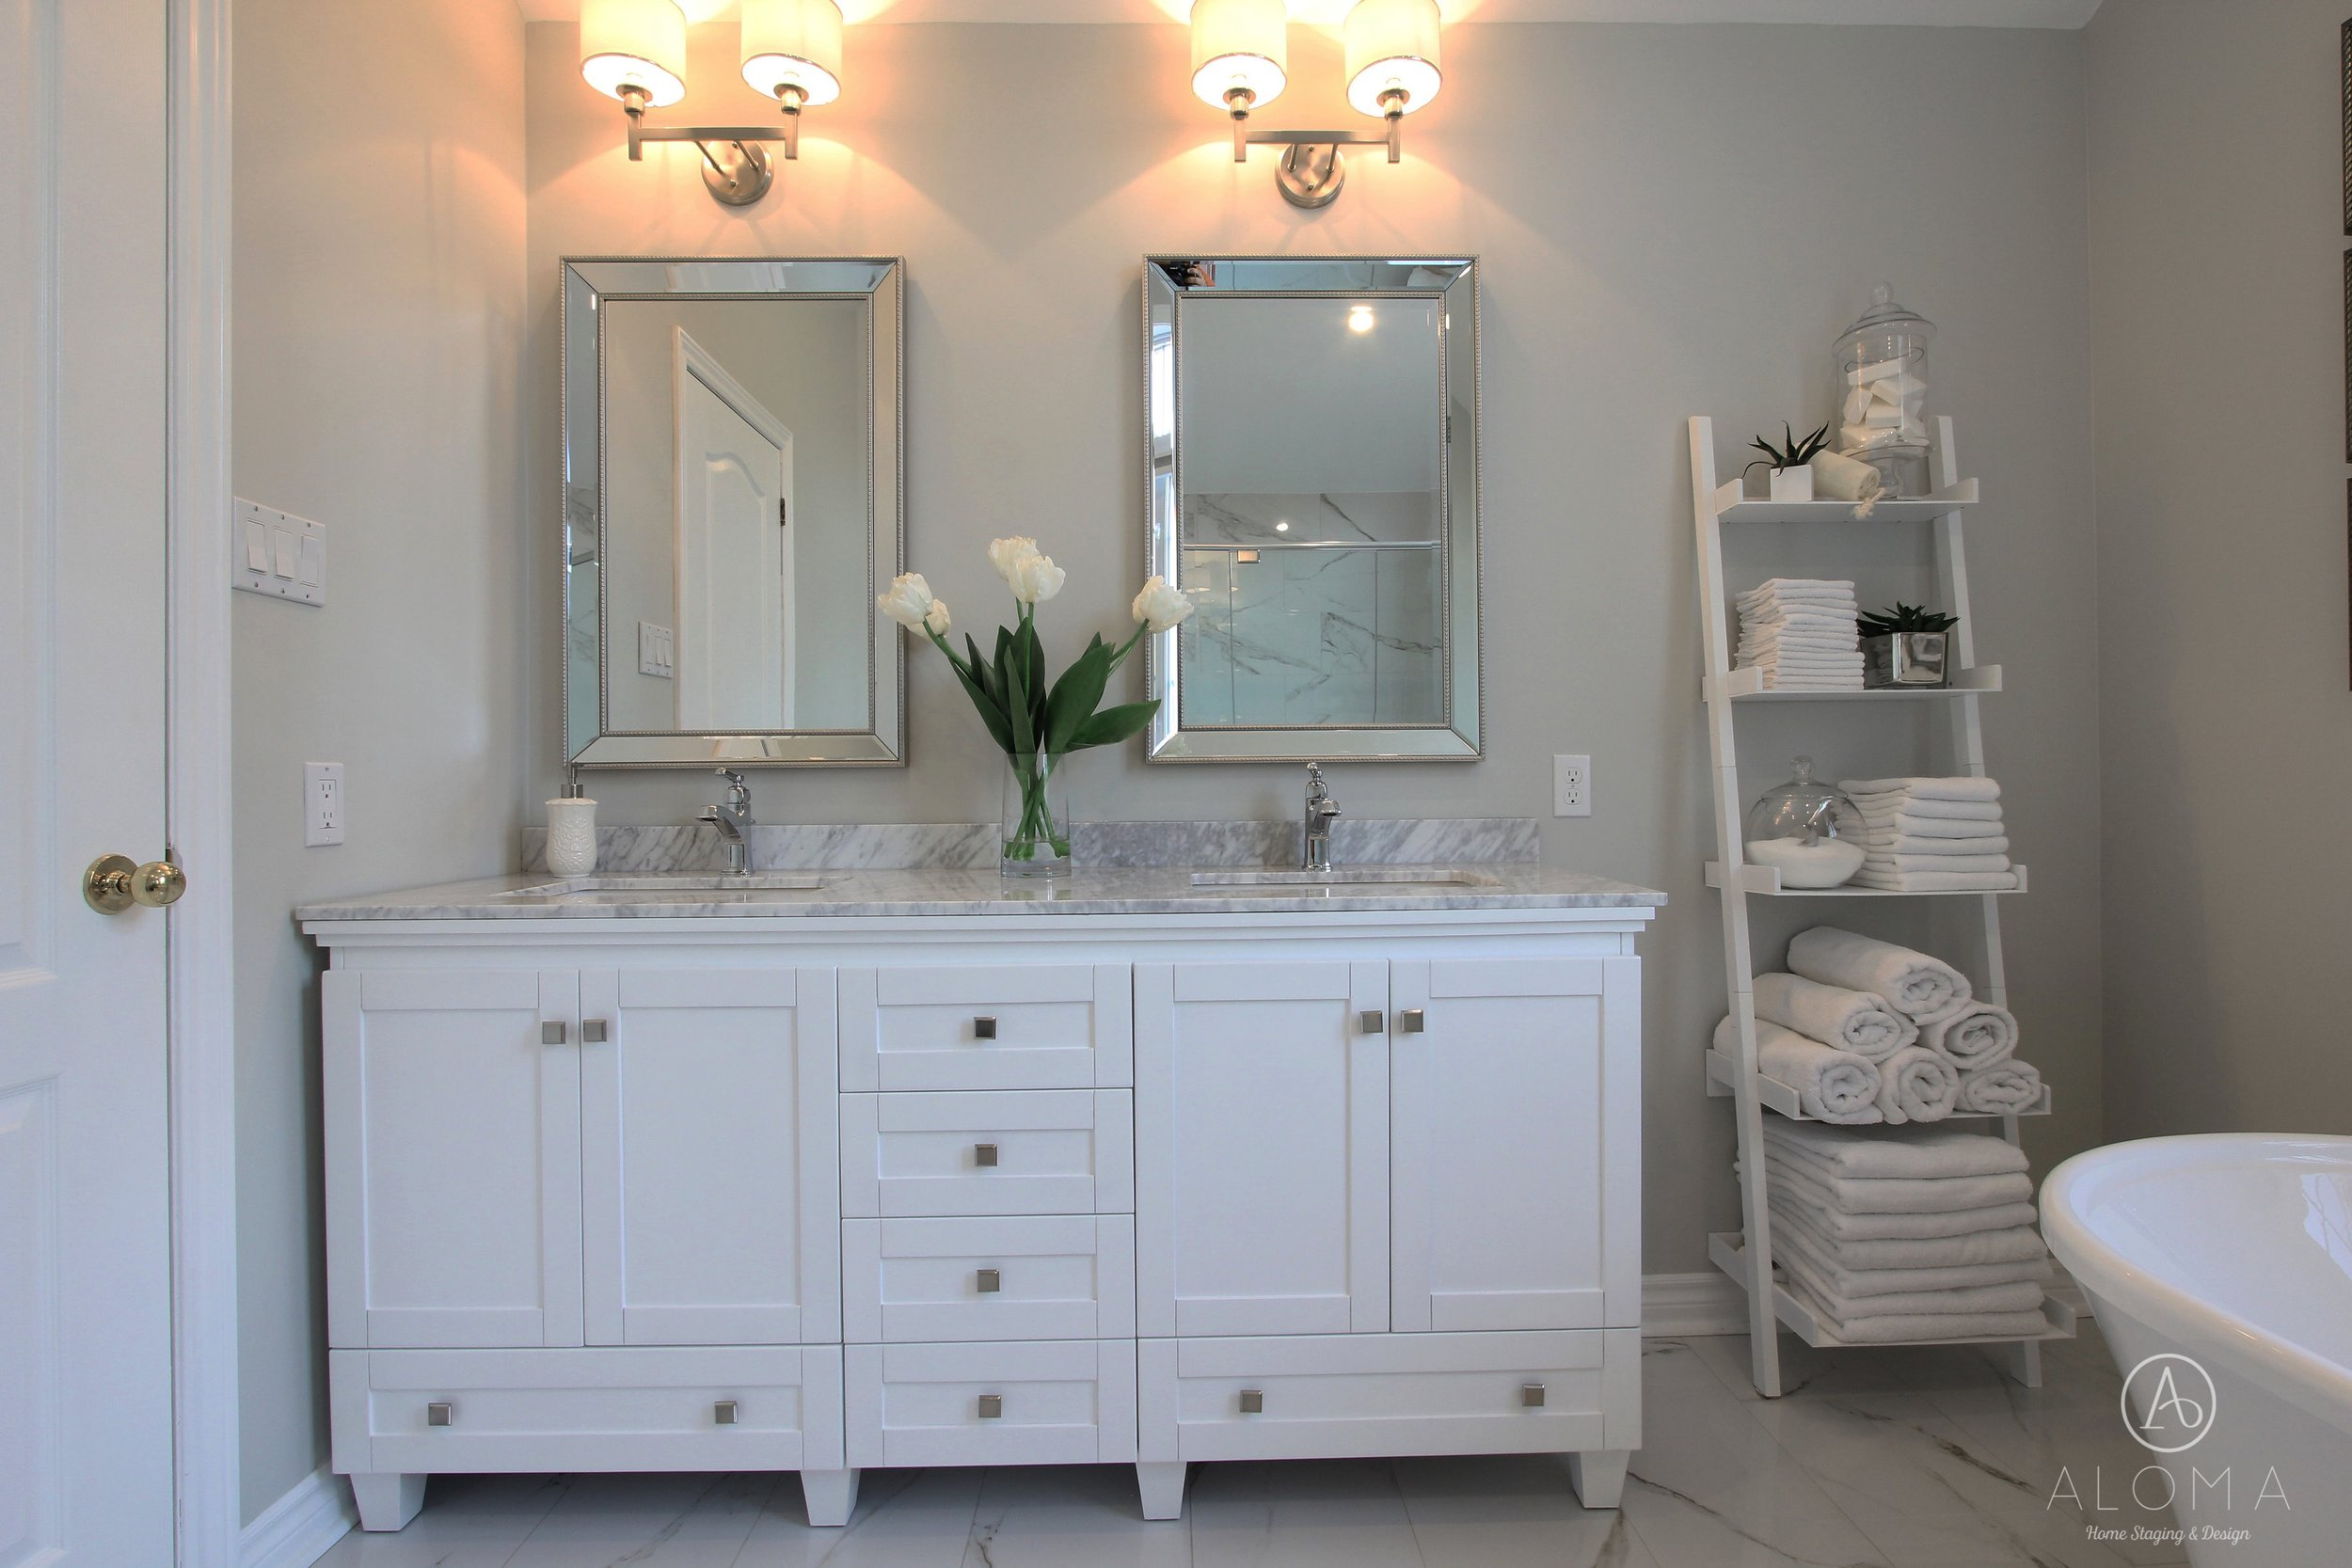 After-Country Walk Bathroom by ALOMA Home Staging & Design